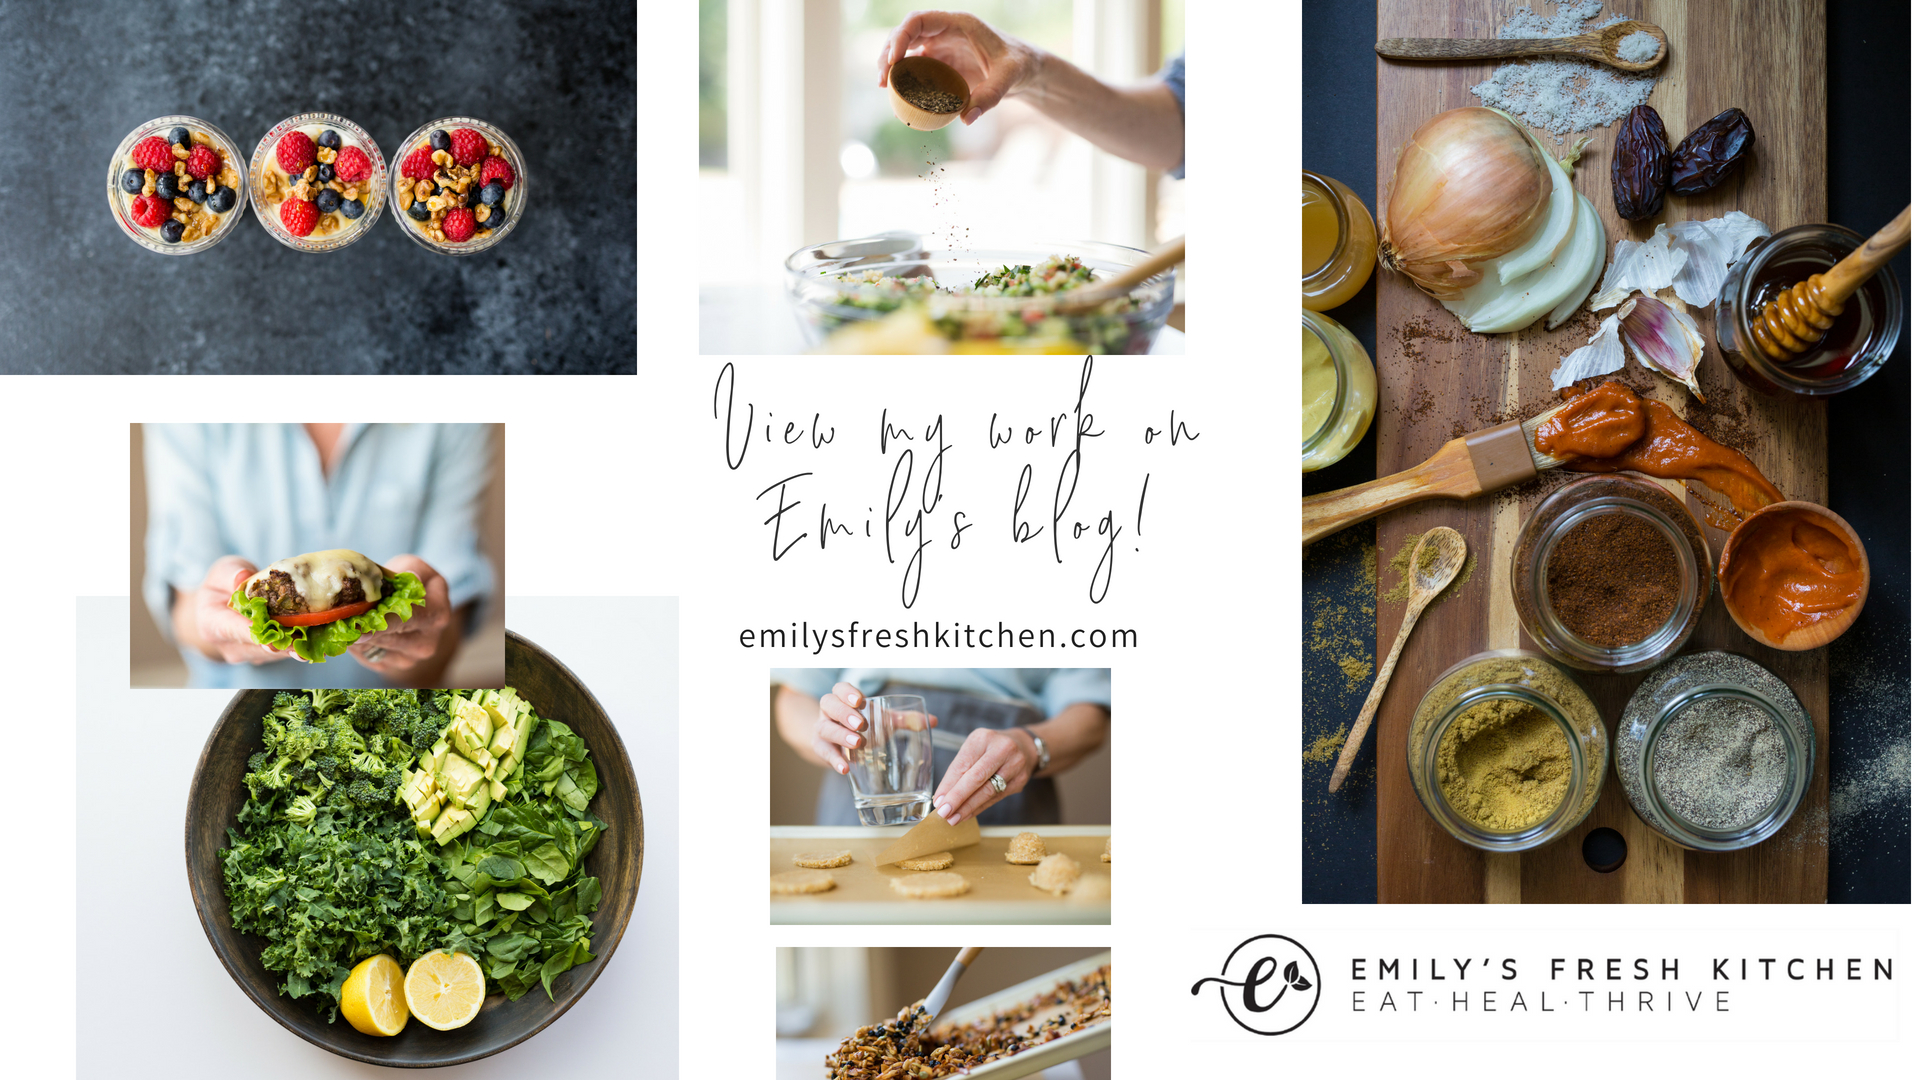 emily's fresh kitchen